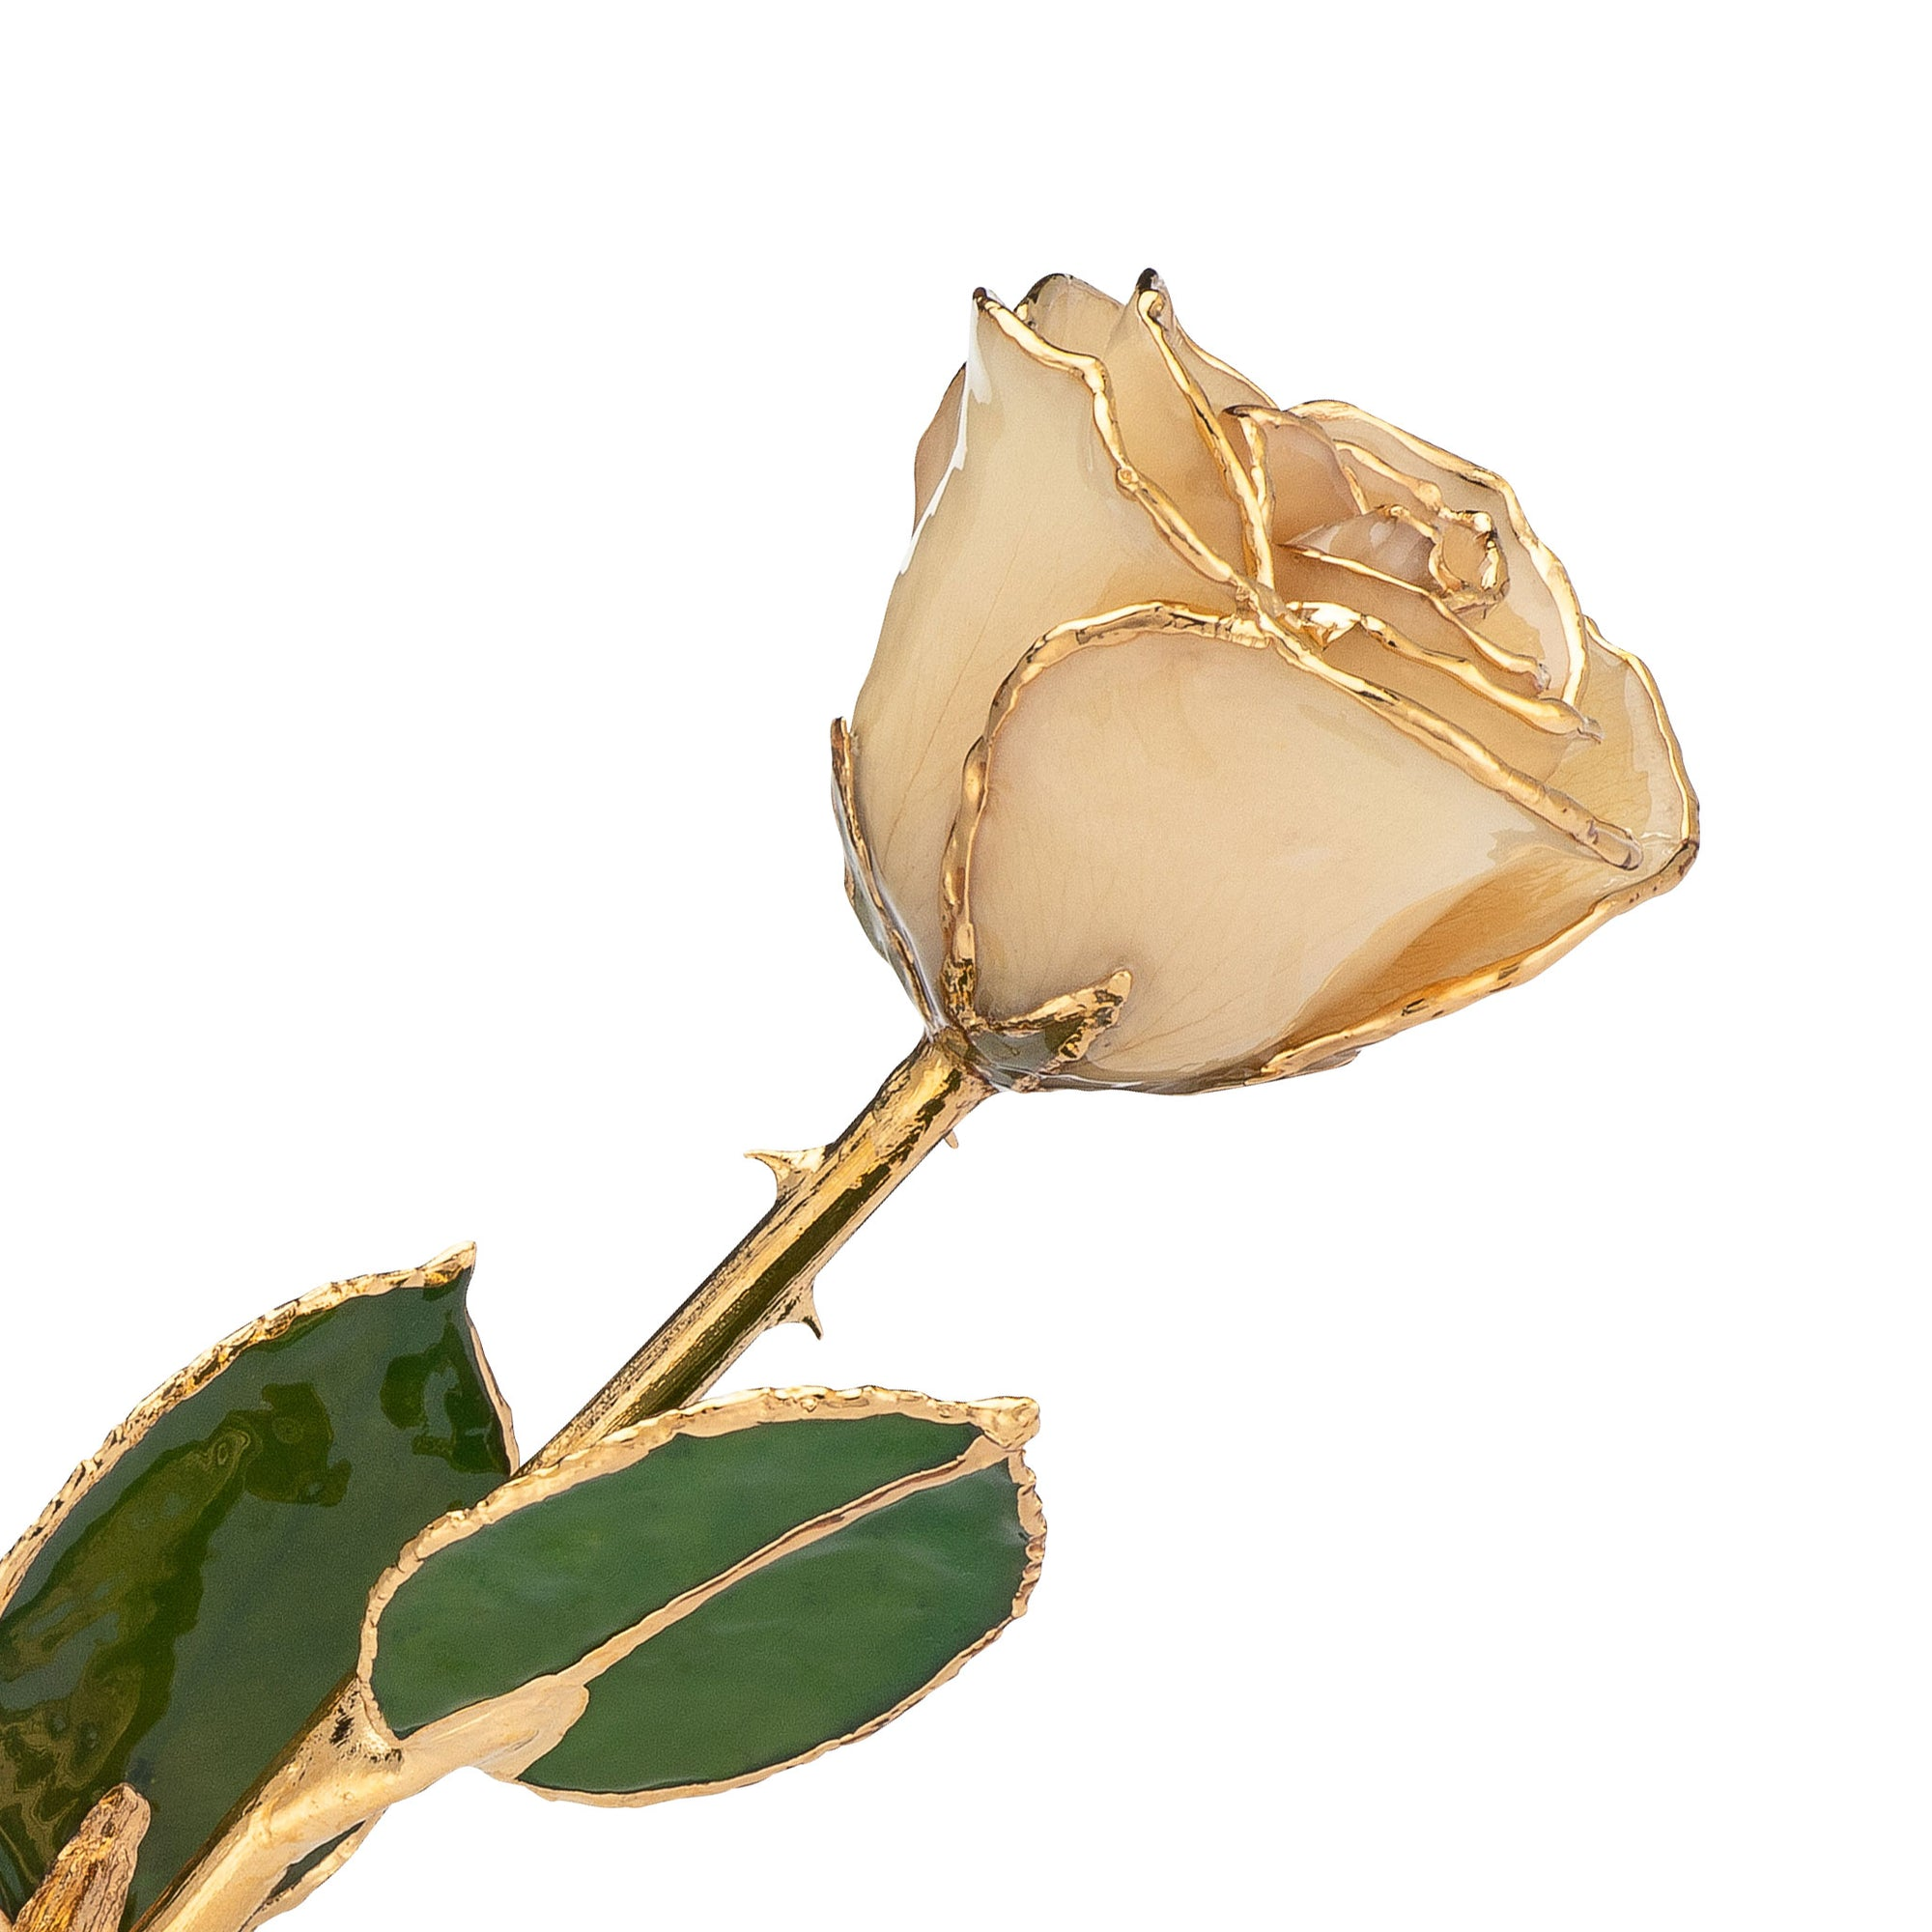 24K Gold Trimmed Forever Rose with White Petals.  View of Stem, Leaves, and Rose Petals and Showing Detail of Gold Trim